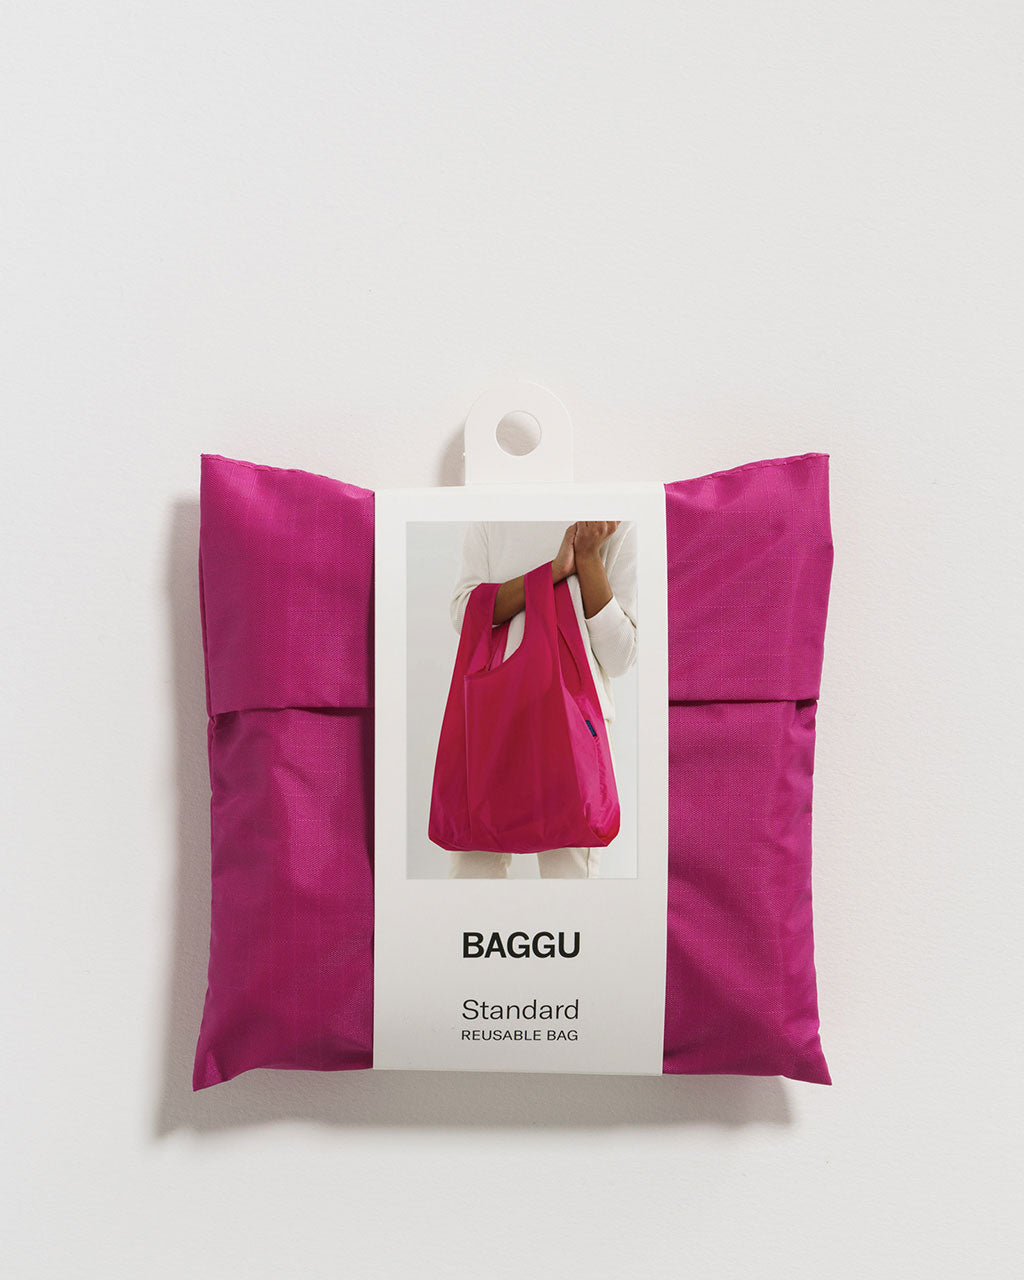 magenta baggu shown in packaging